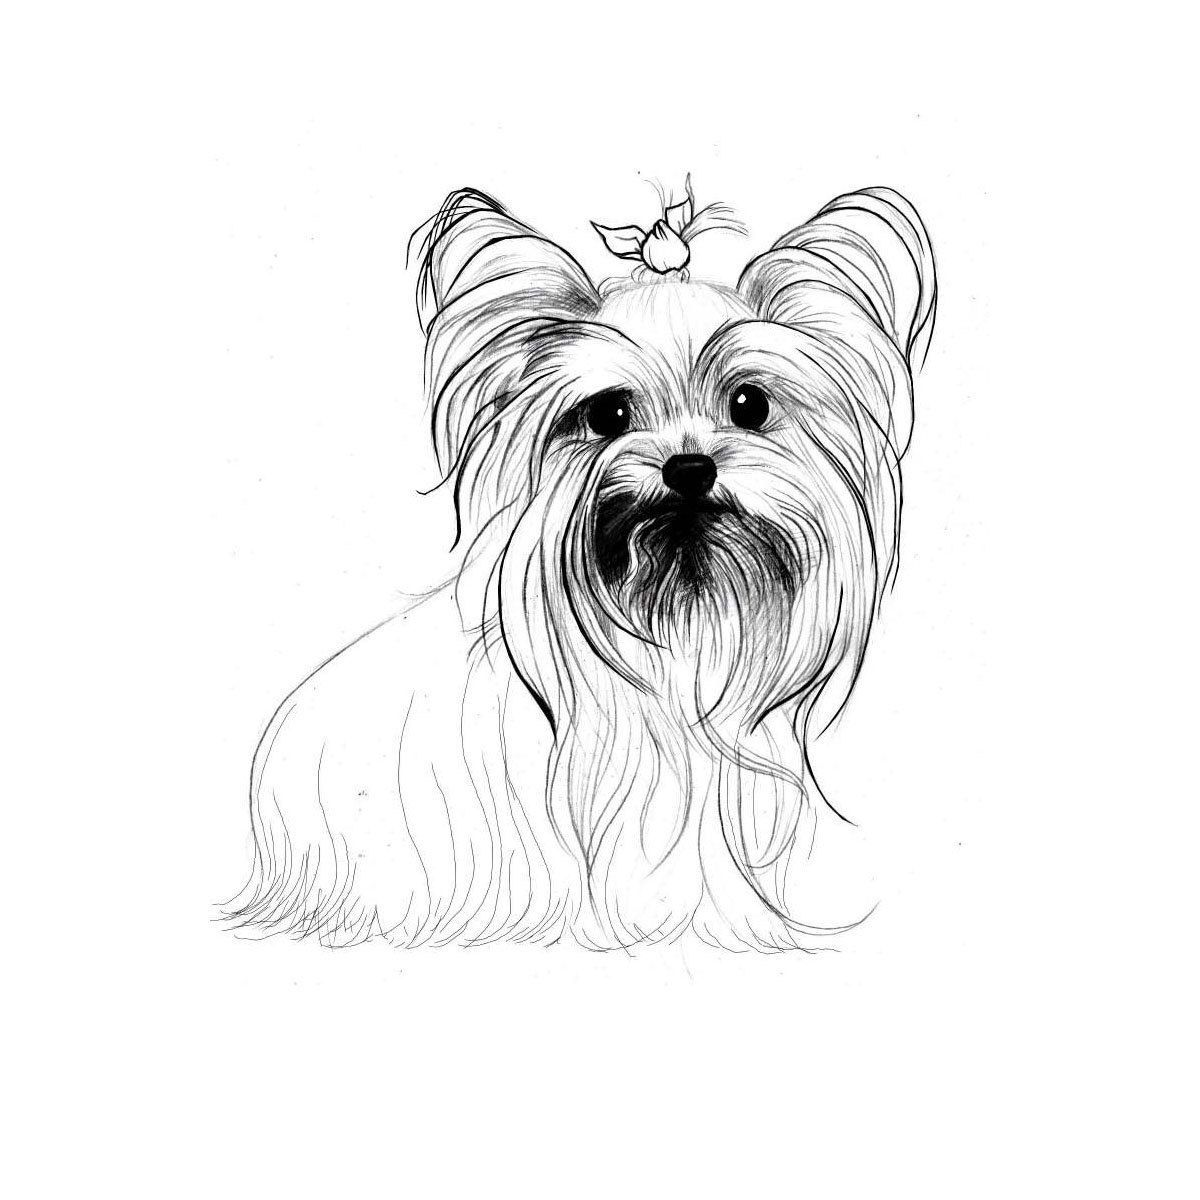 dog grooming coloring pages mobilecoloring horse grooming tools coloring pages grooming dog pages coloring